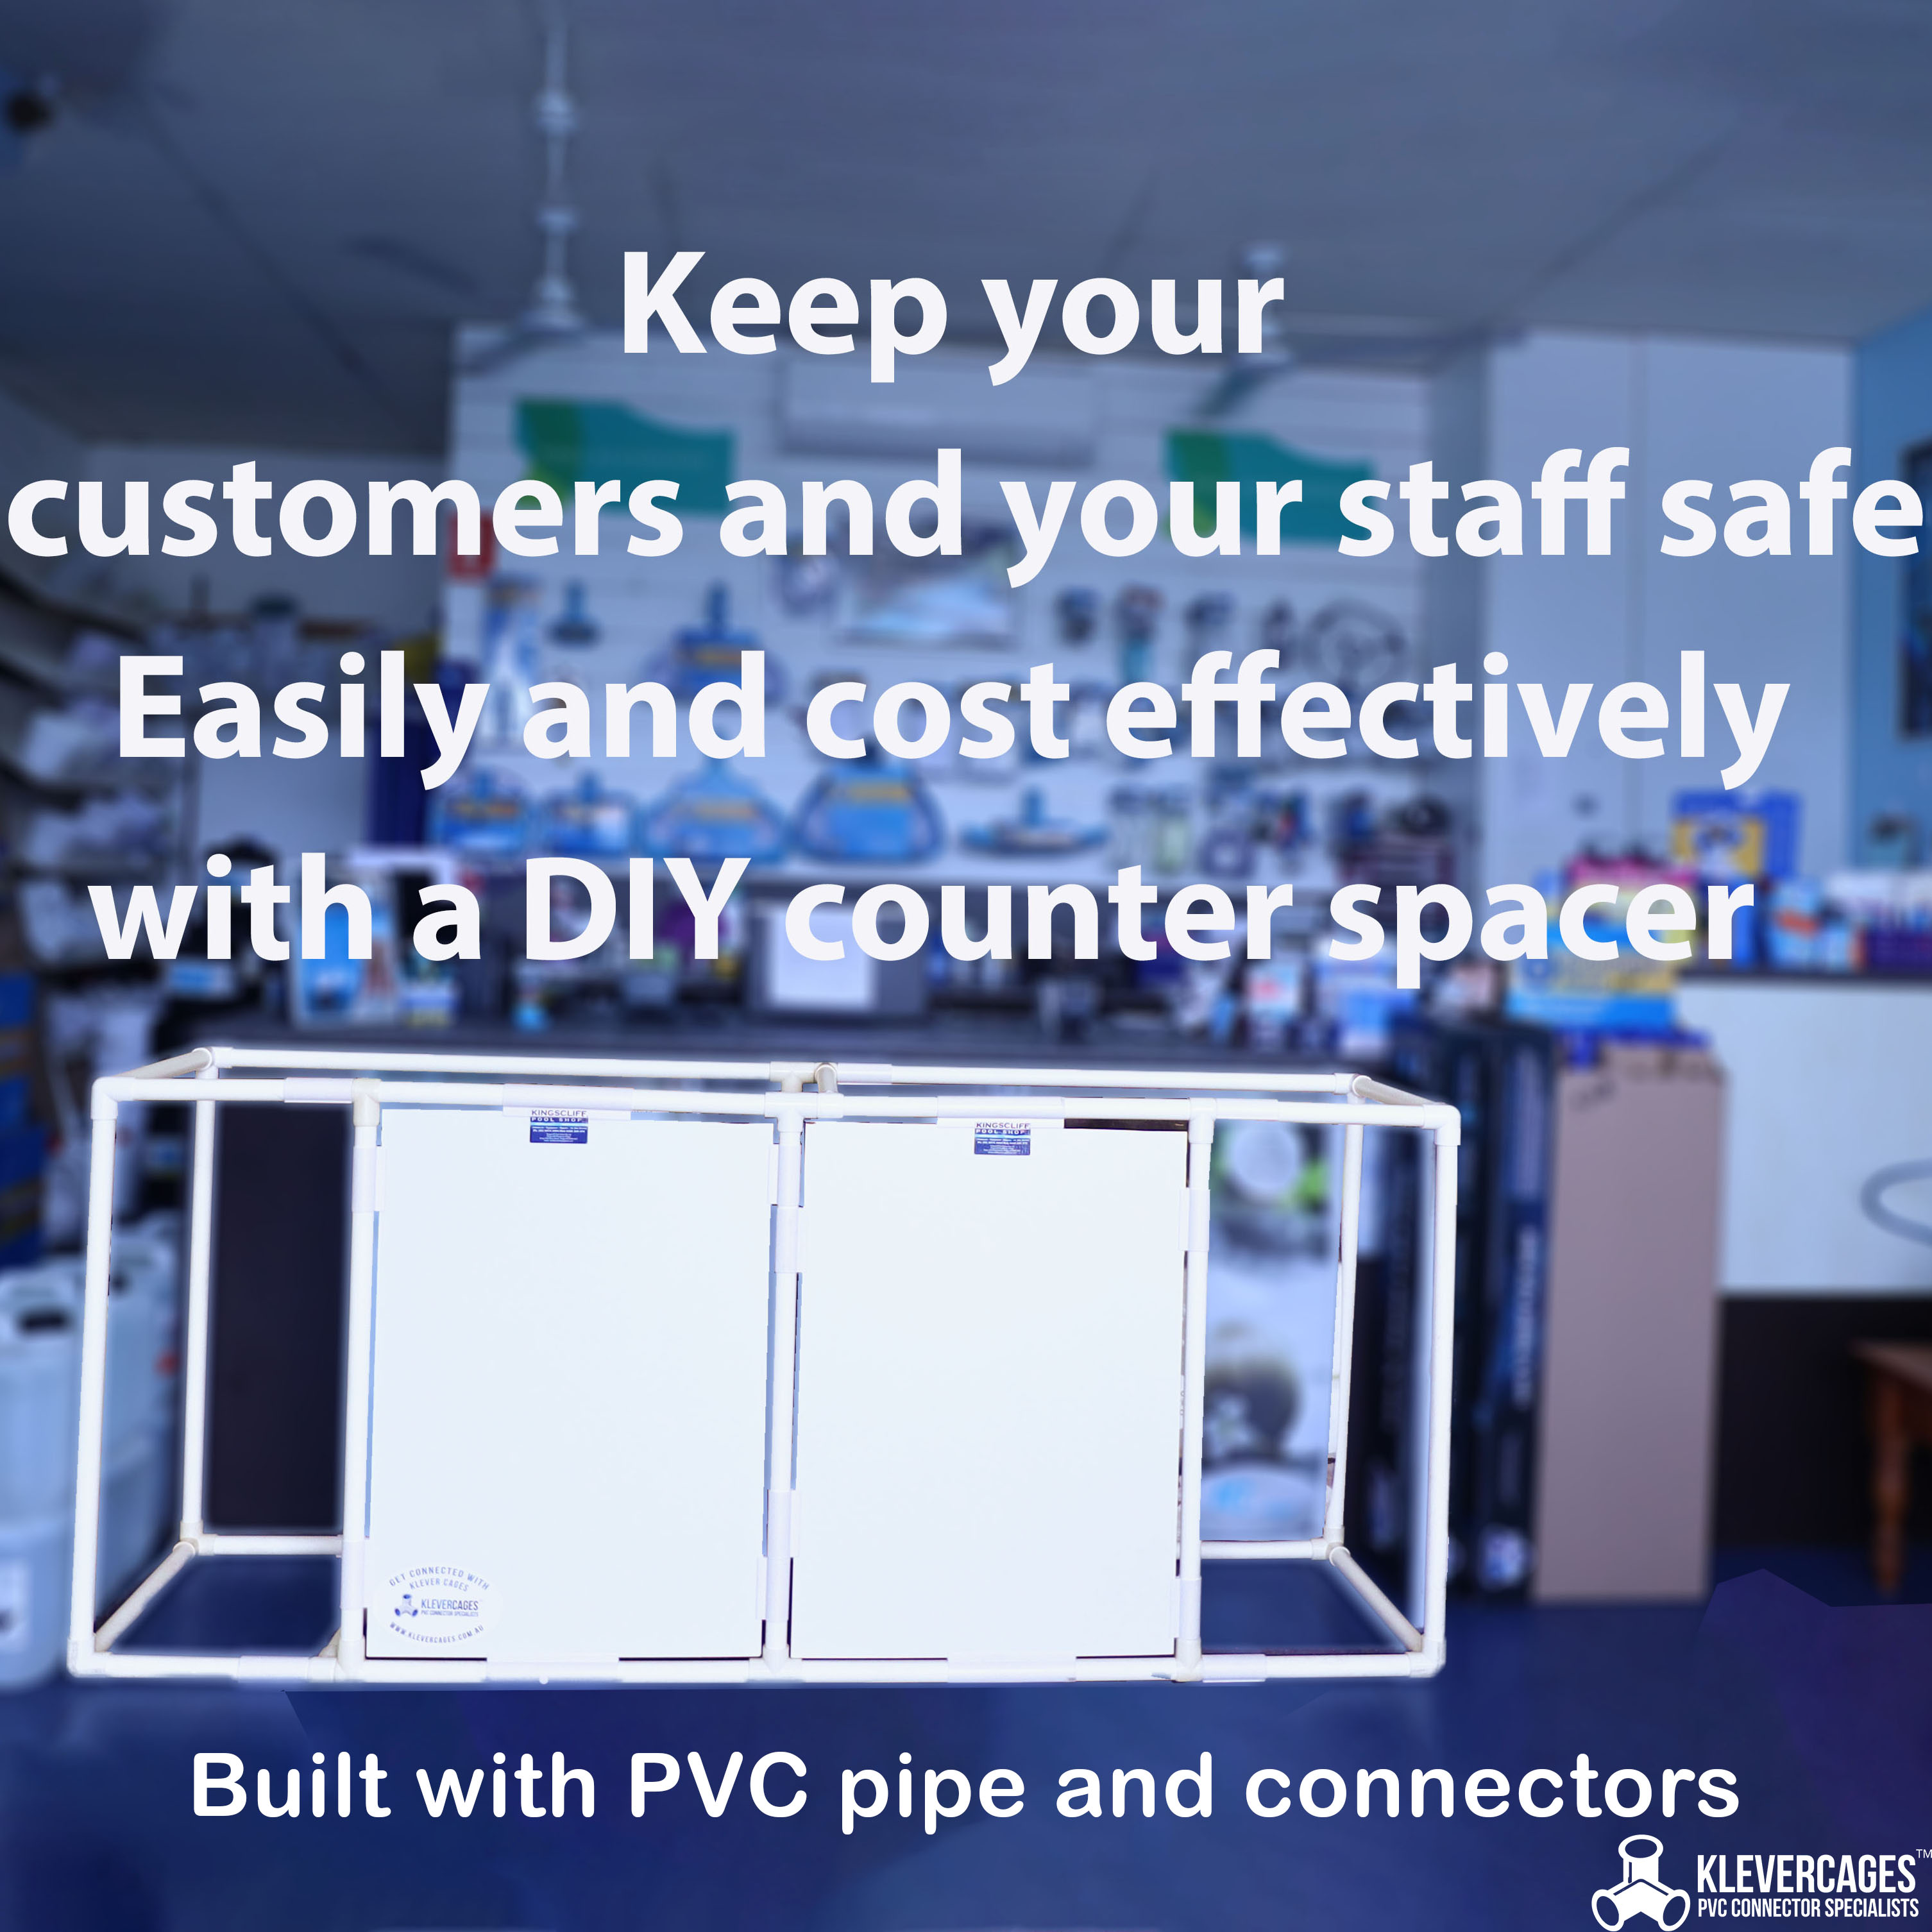 Retail shop counter physical space barrier to keep customers 1.5m, or 6 feet distance built with PVC connectors and PVC pipe Klever Cages